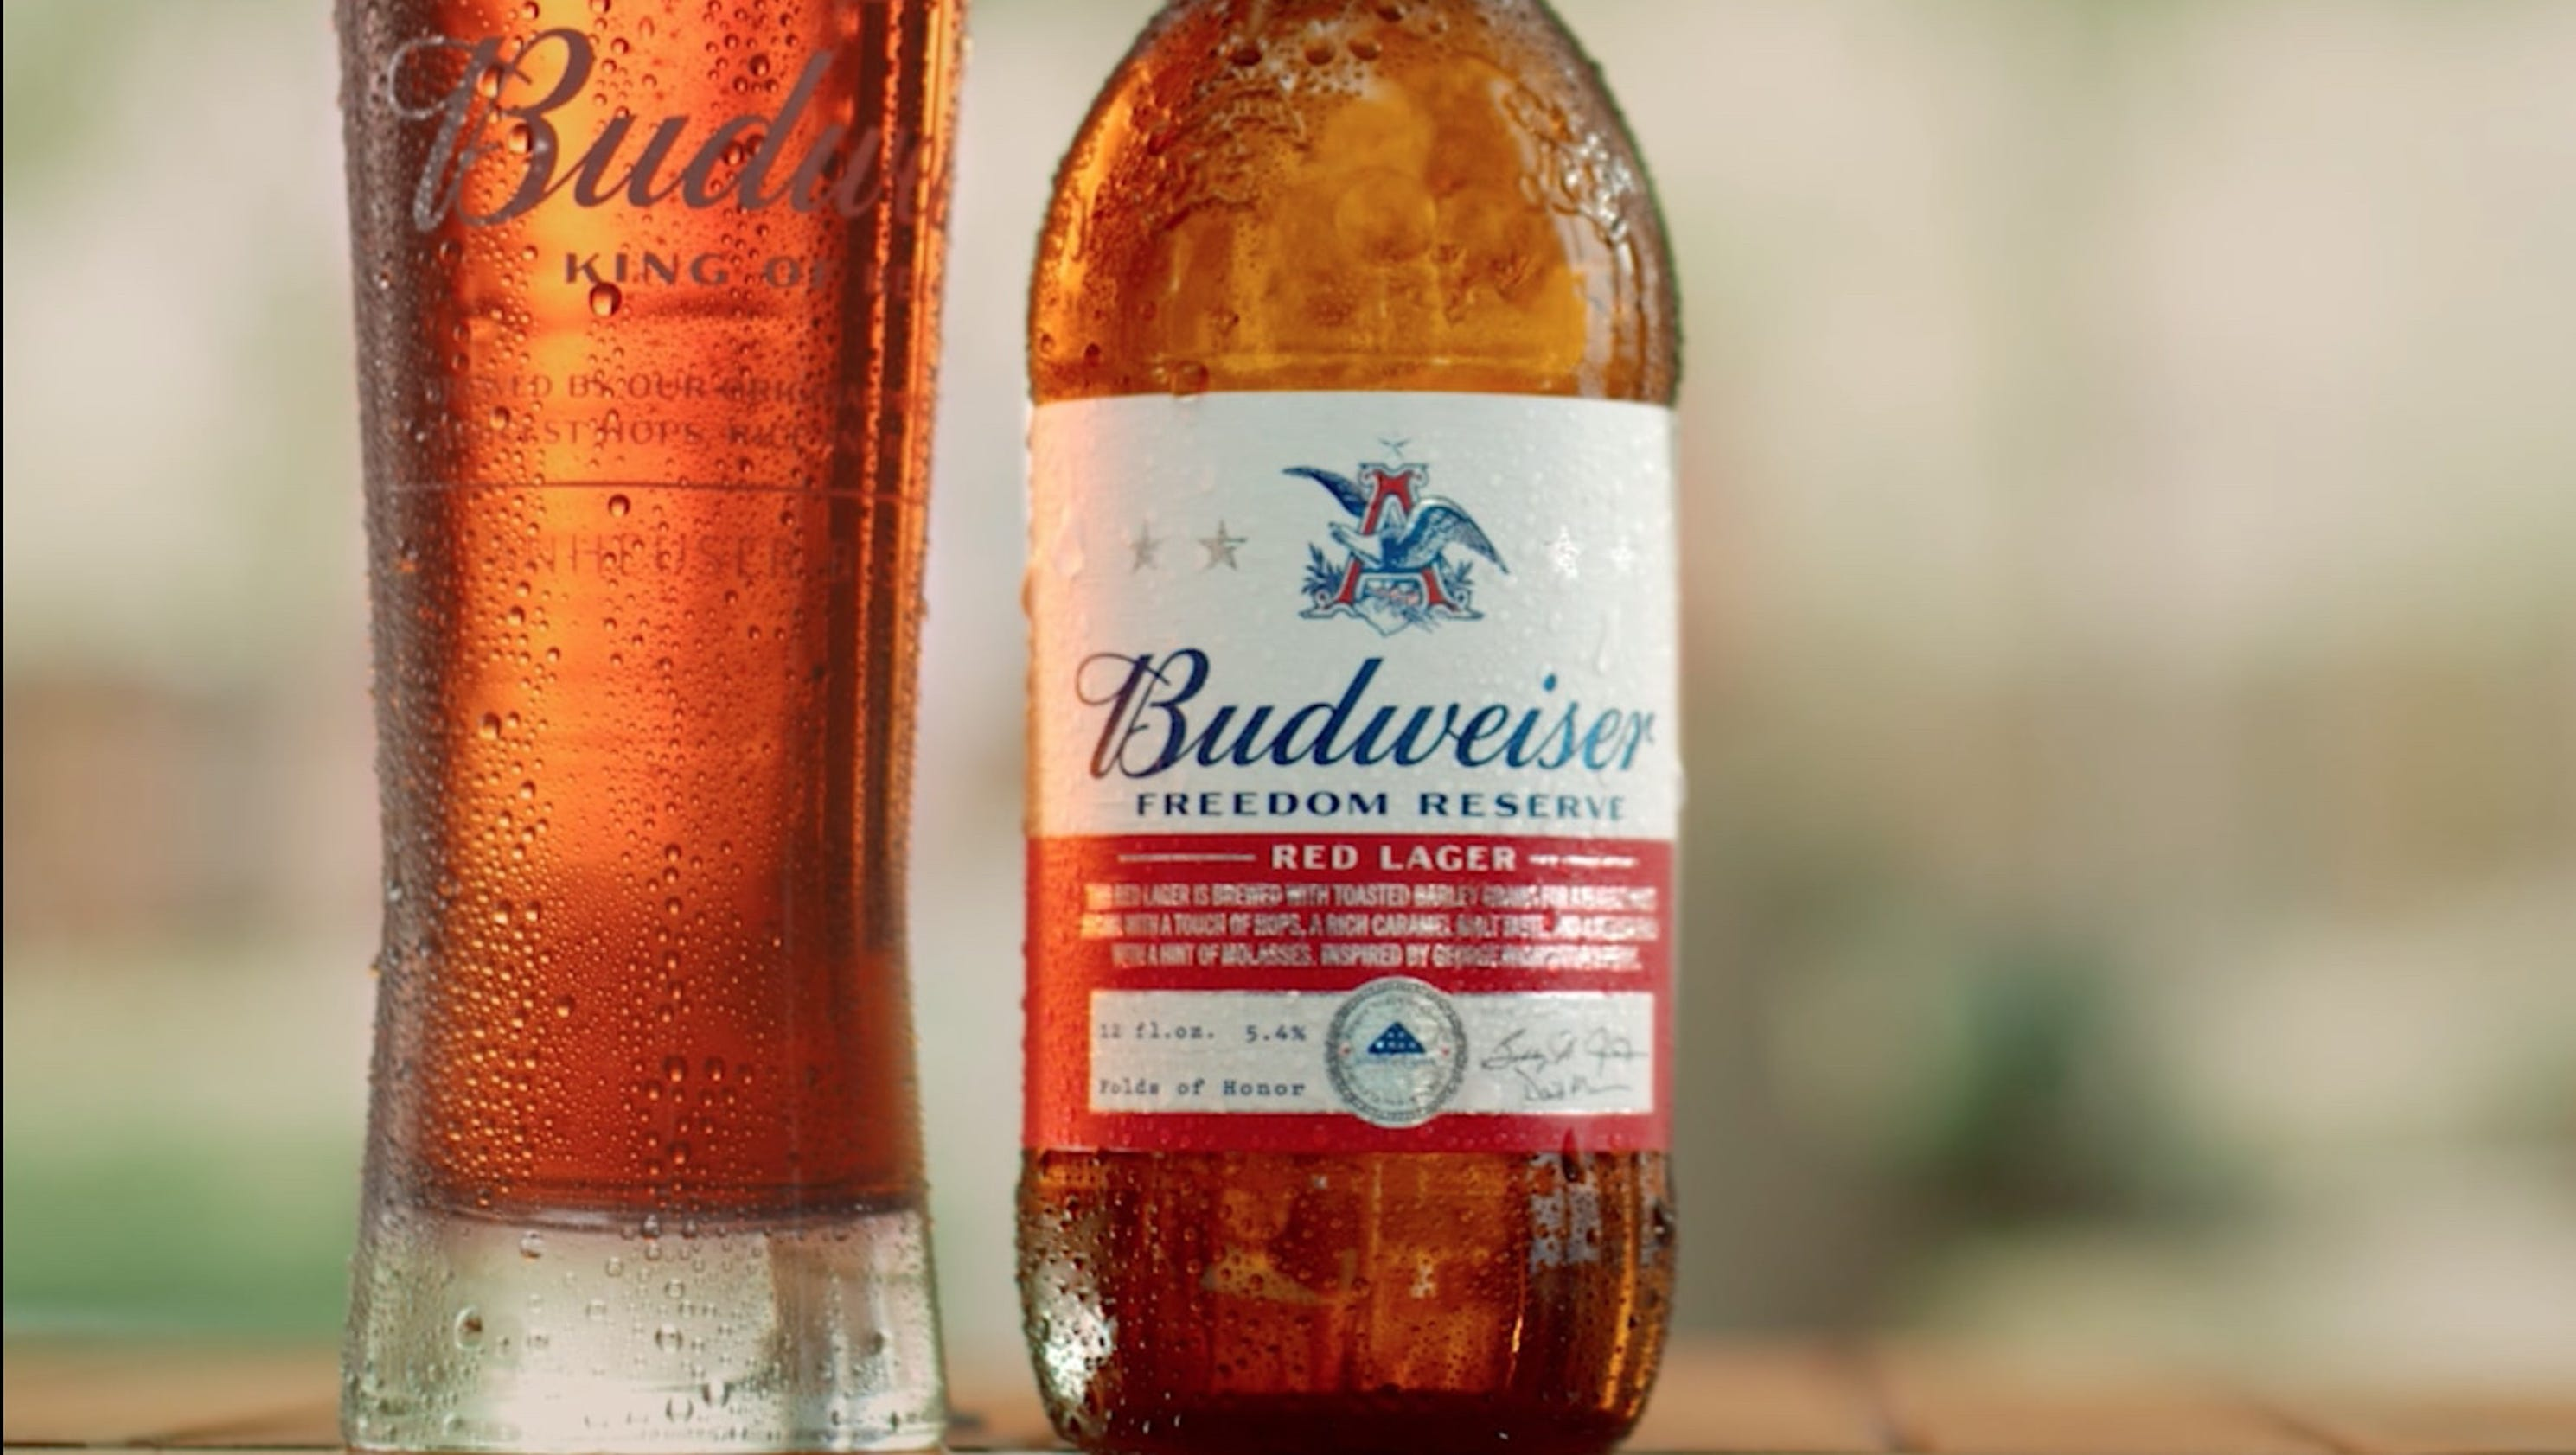 Budweiser 39 s new beer based on george washington 39 s hand written recipe - Budweiser beer pictures ...